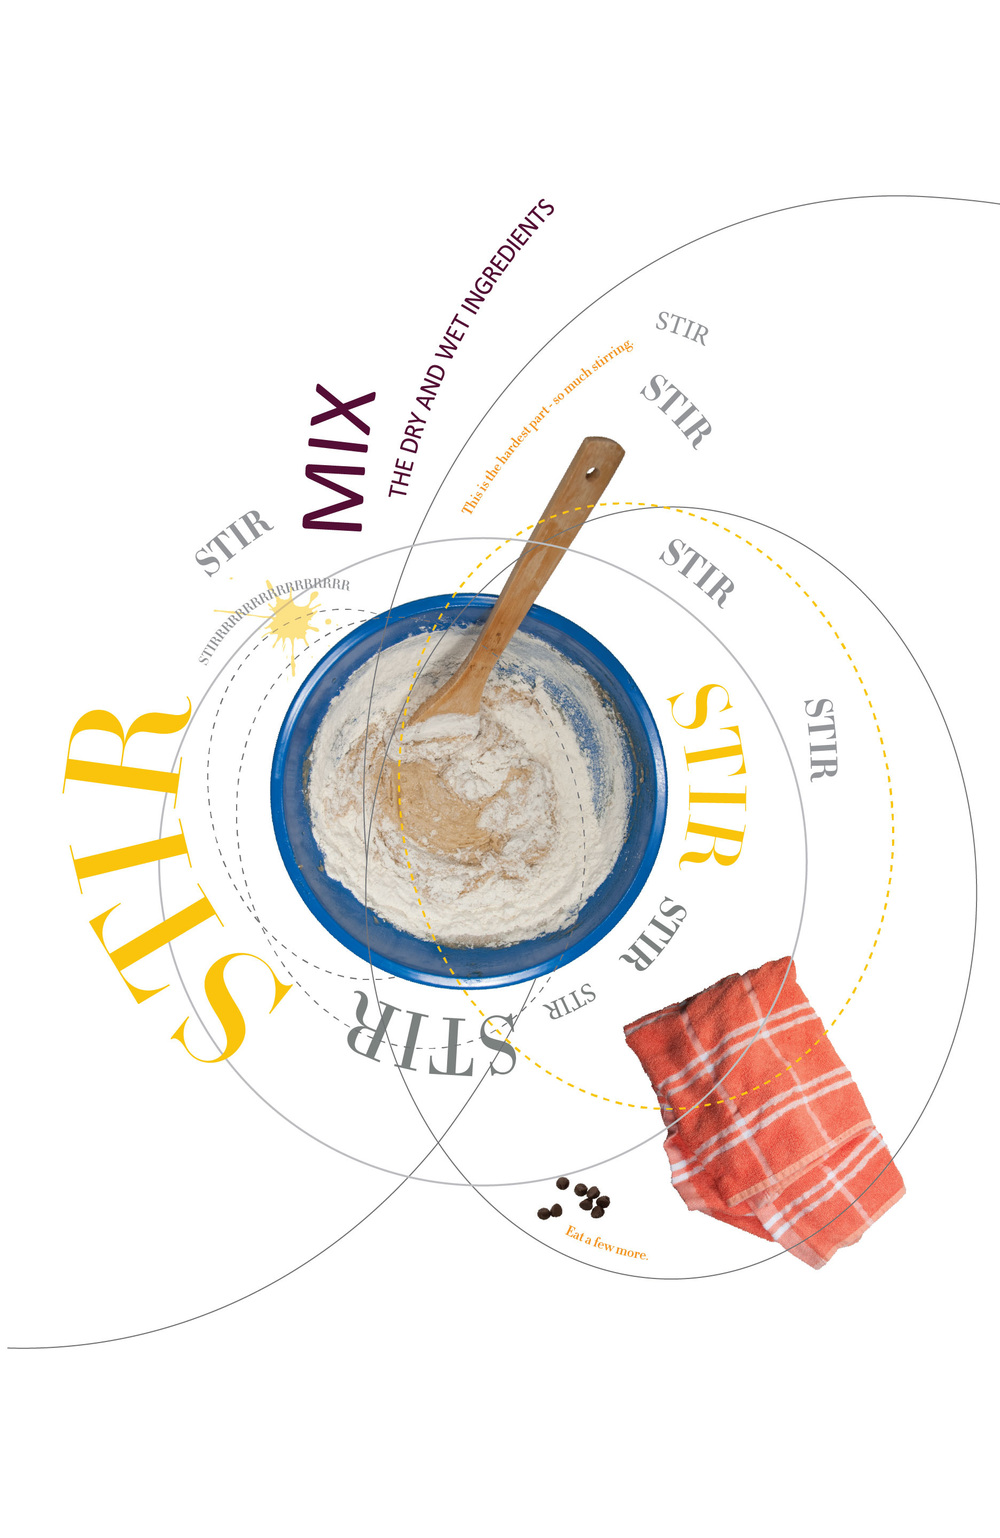 Detail of mixing the wet and dry ingredient section.